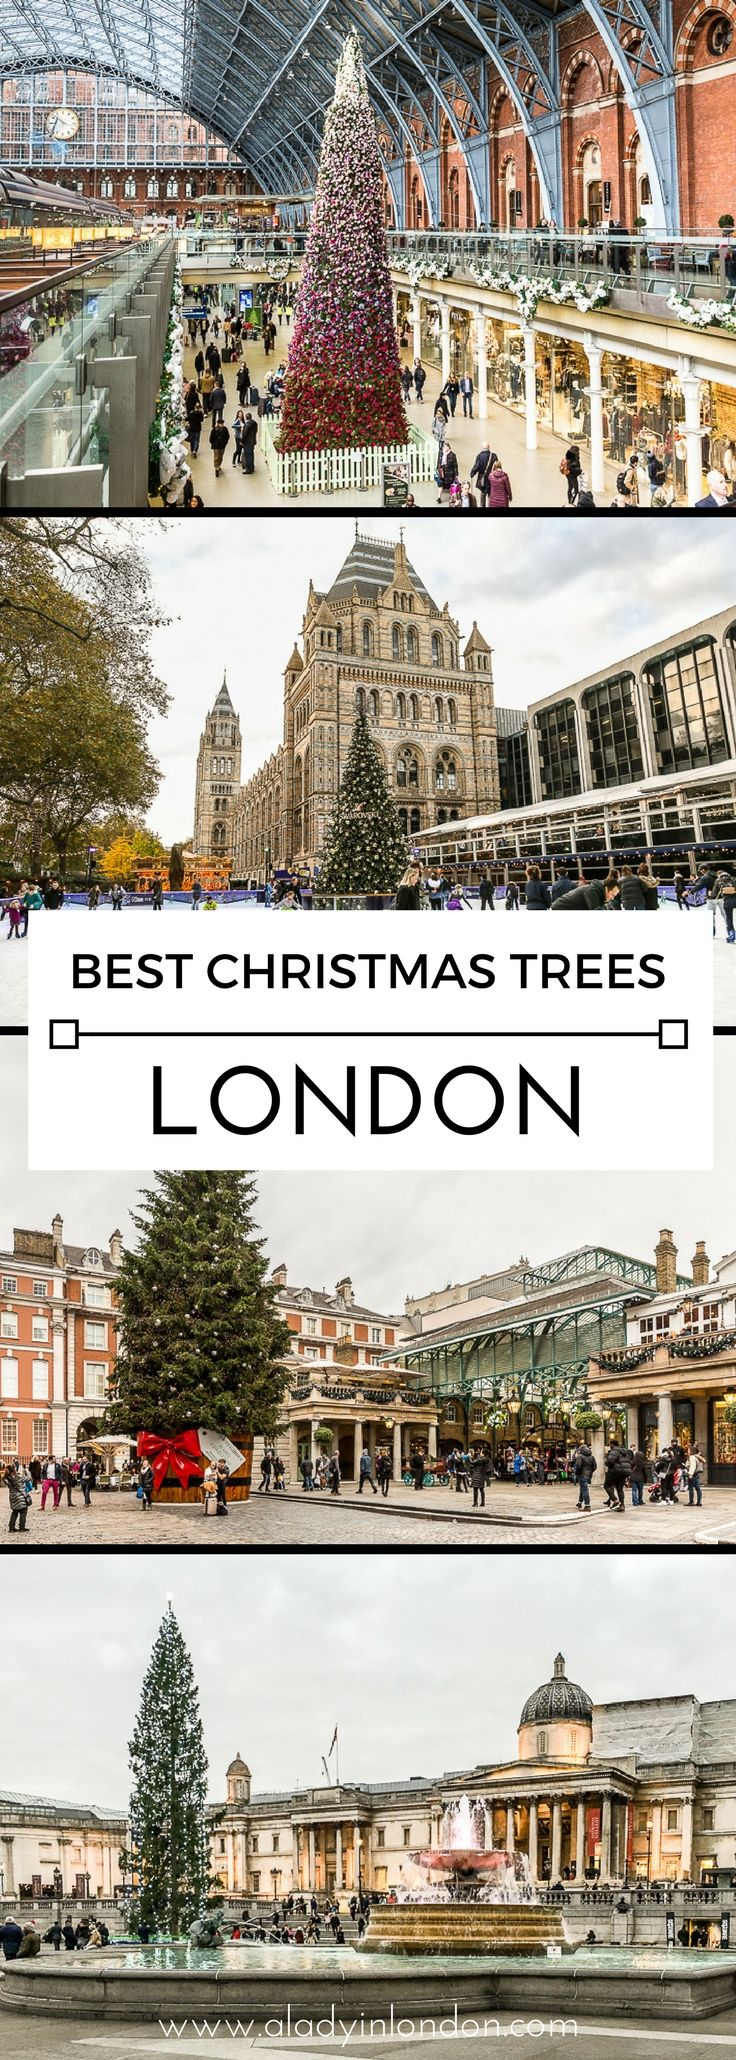 7 London Christmas trees you have to see, from giant spruces to fashionable creations. #london #christmas #ChristmasTree #londonchristmas